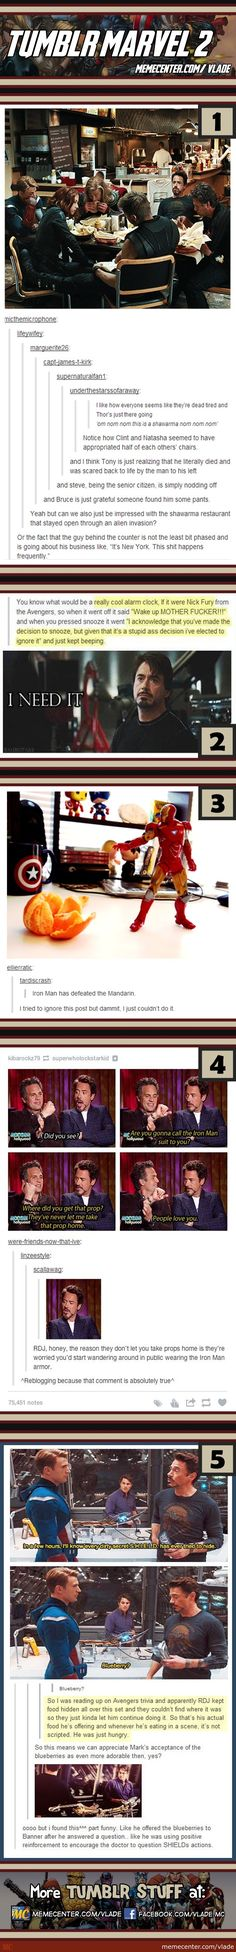 Tumblr Marvel #2...I apologize in advance for the language, but some of these are funny